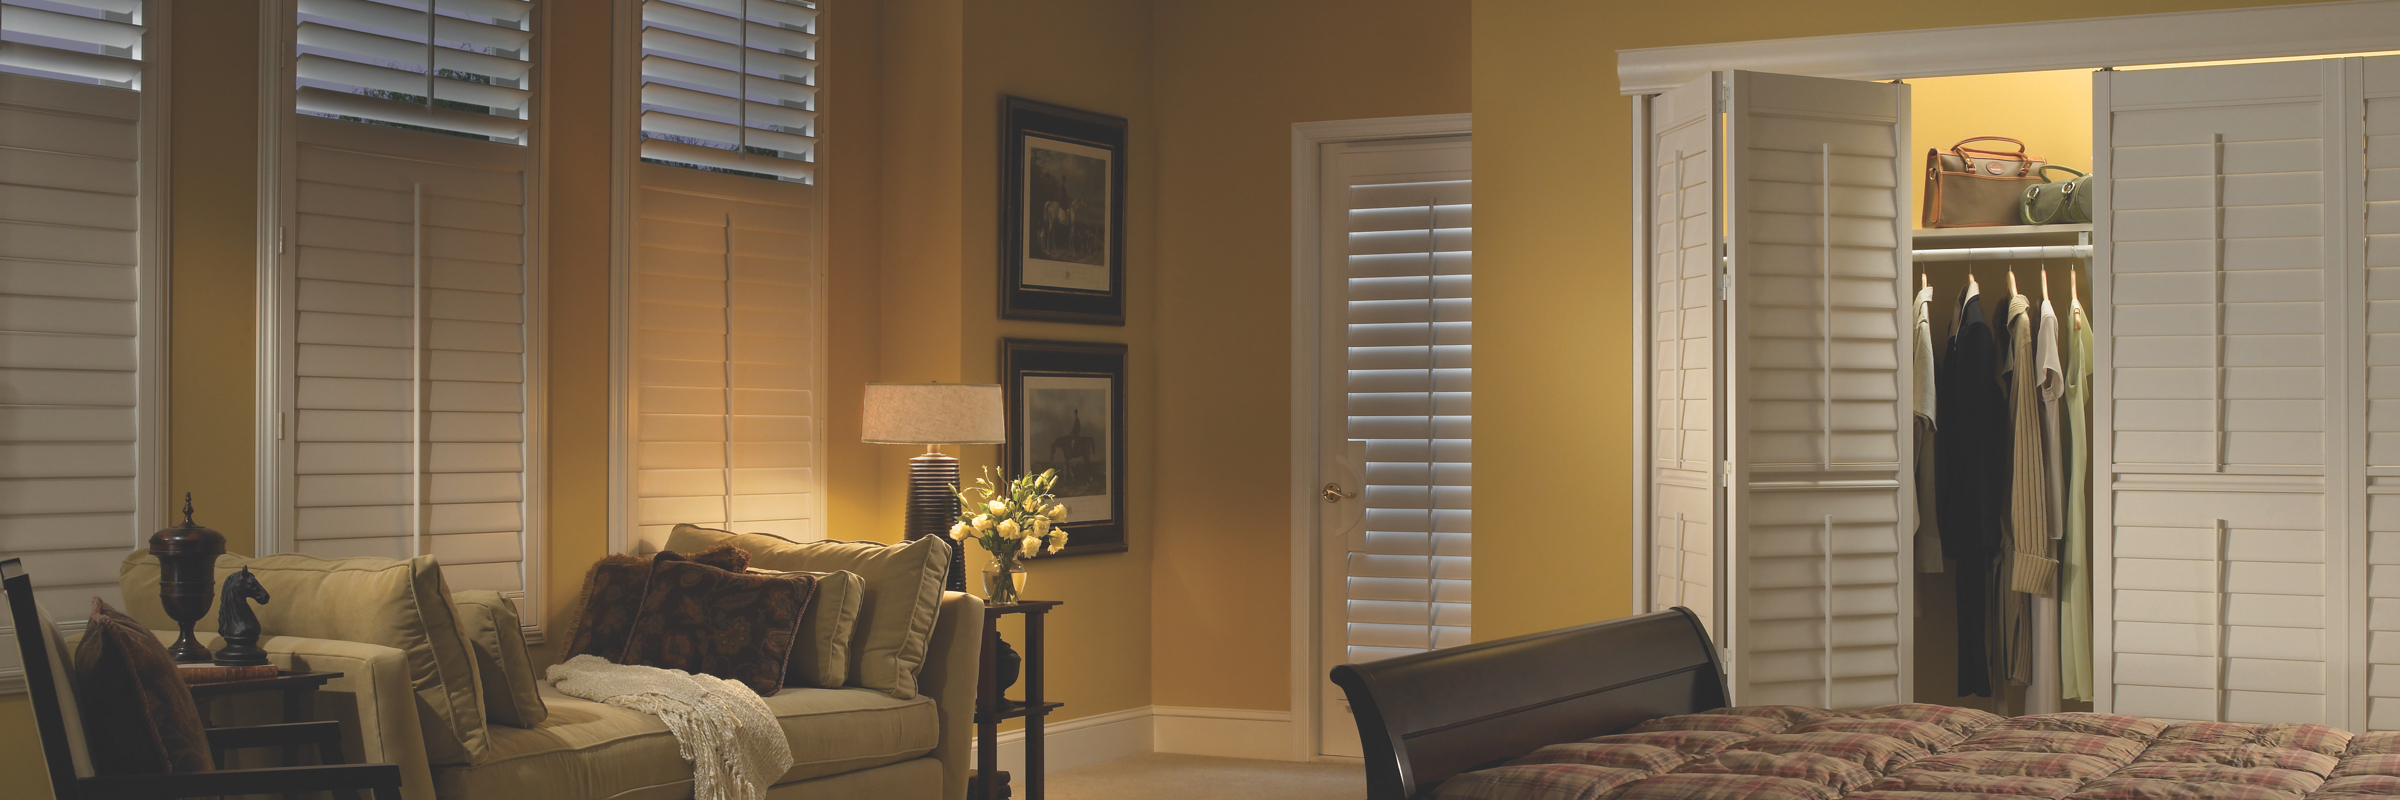 Budget Blinds of Greater Colorado Springs and Pueblo